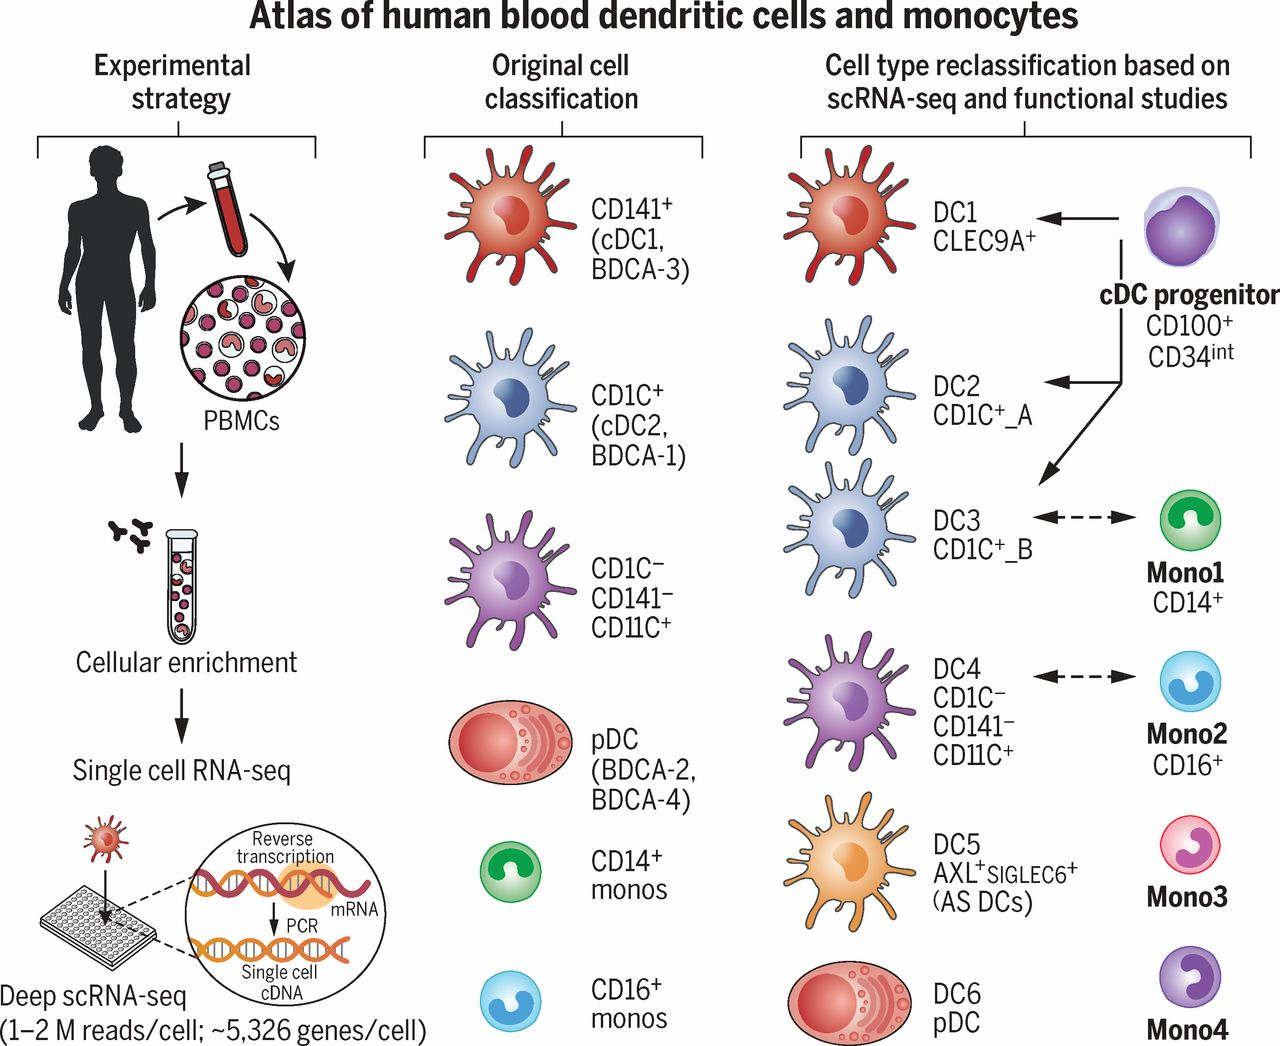 Medical Microbiology Atlas Map For Blood Dendritic Cells